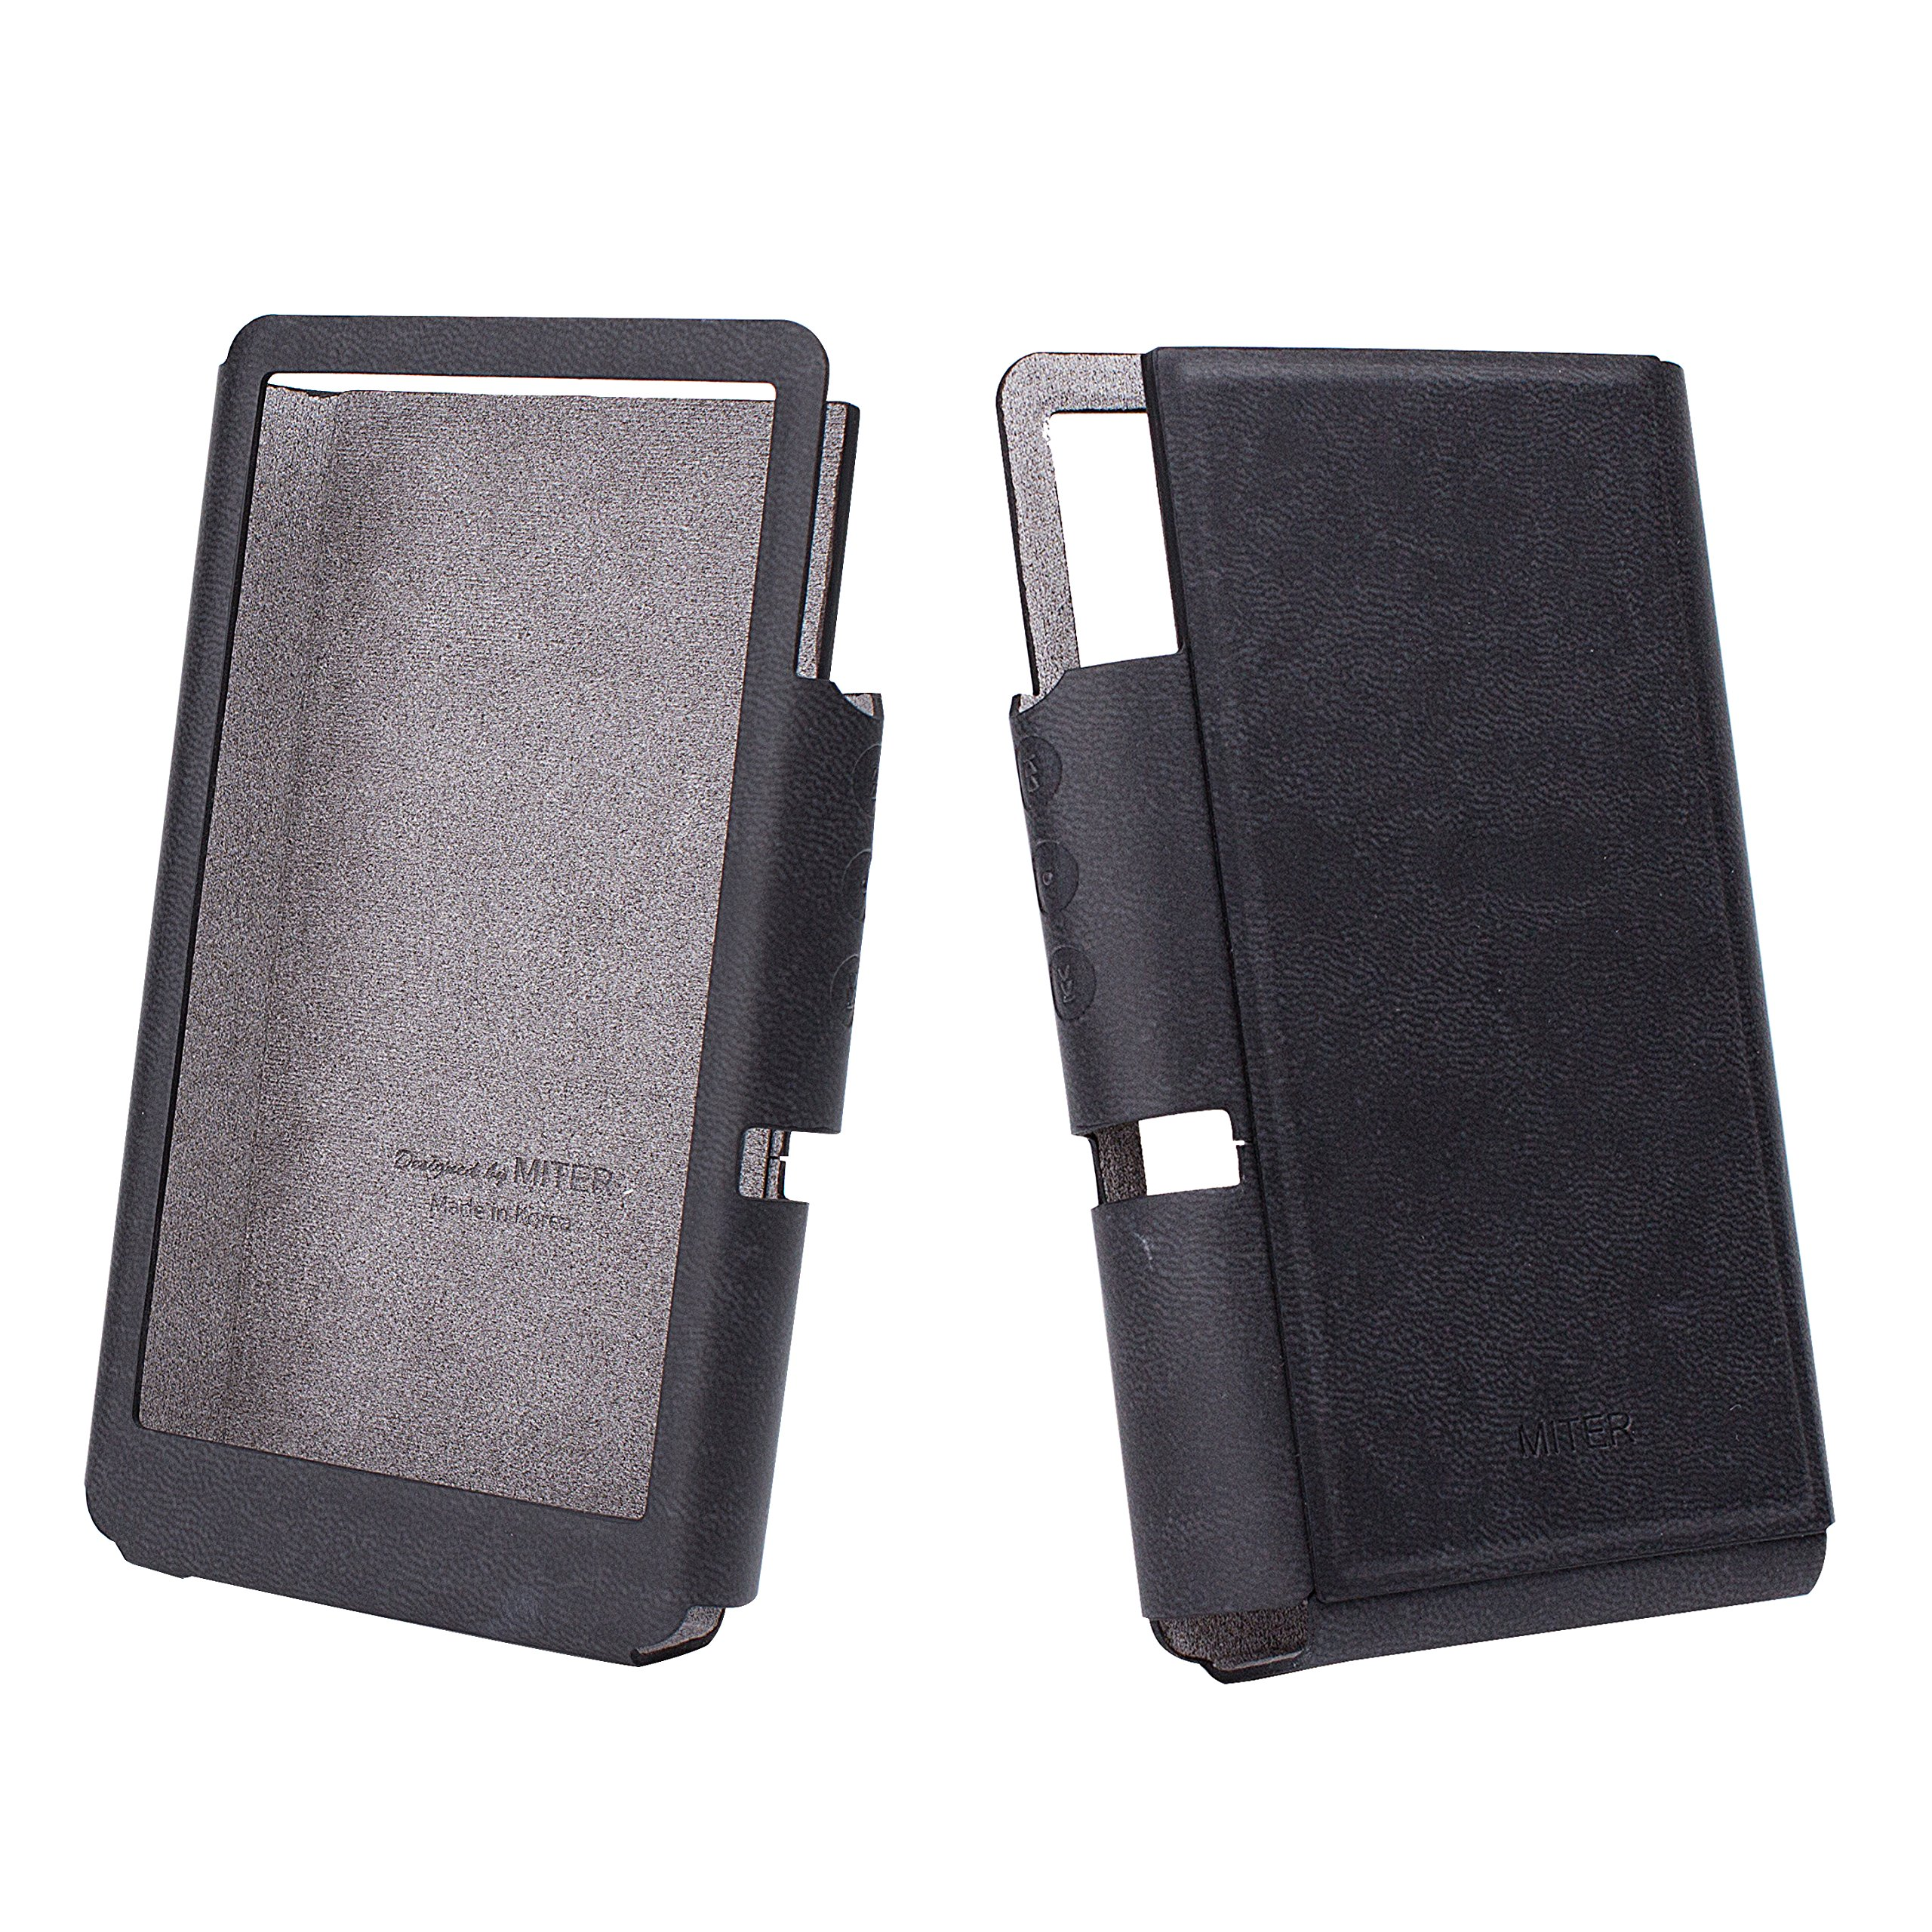 for iBasso DX150 and iBasso DX200 , Hand Crafted Miter PU Leather Case Cover [Non Standing Edition] iBasso DX150 Case (Light Black)